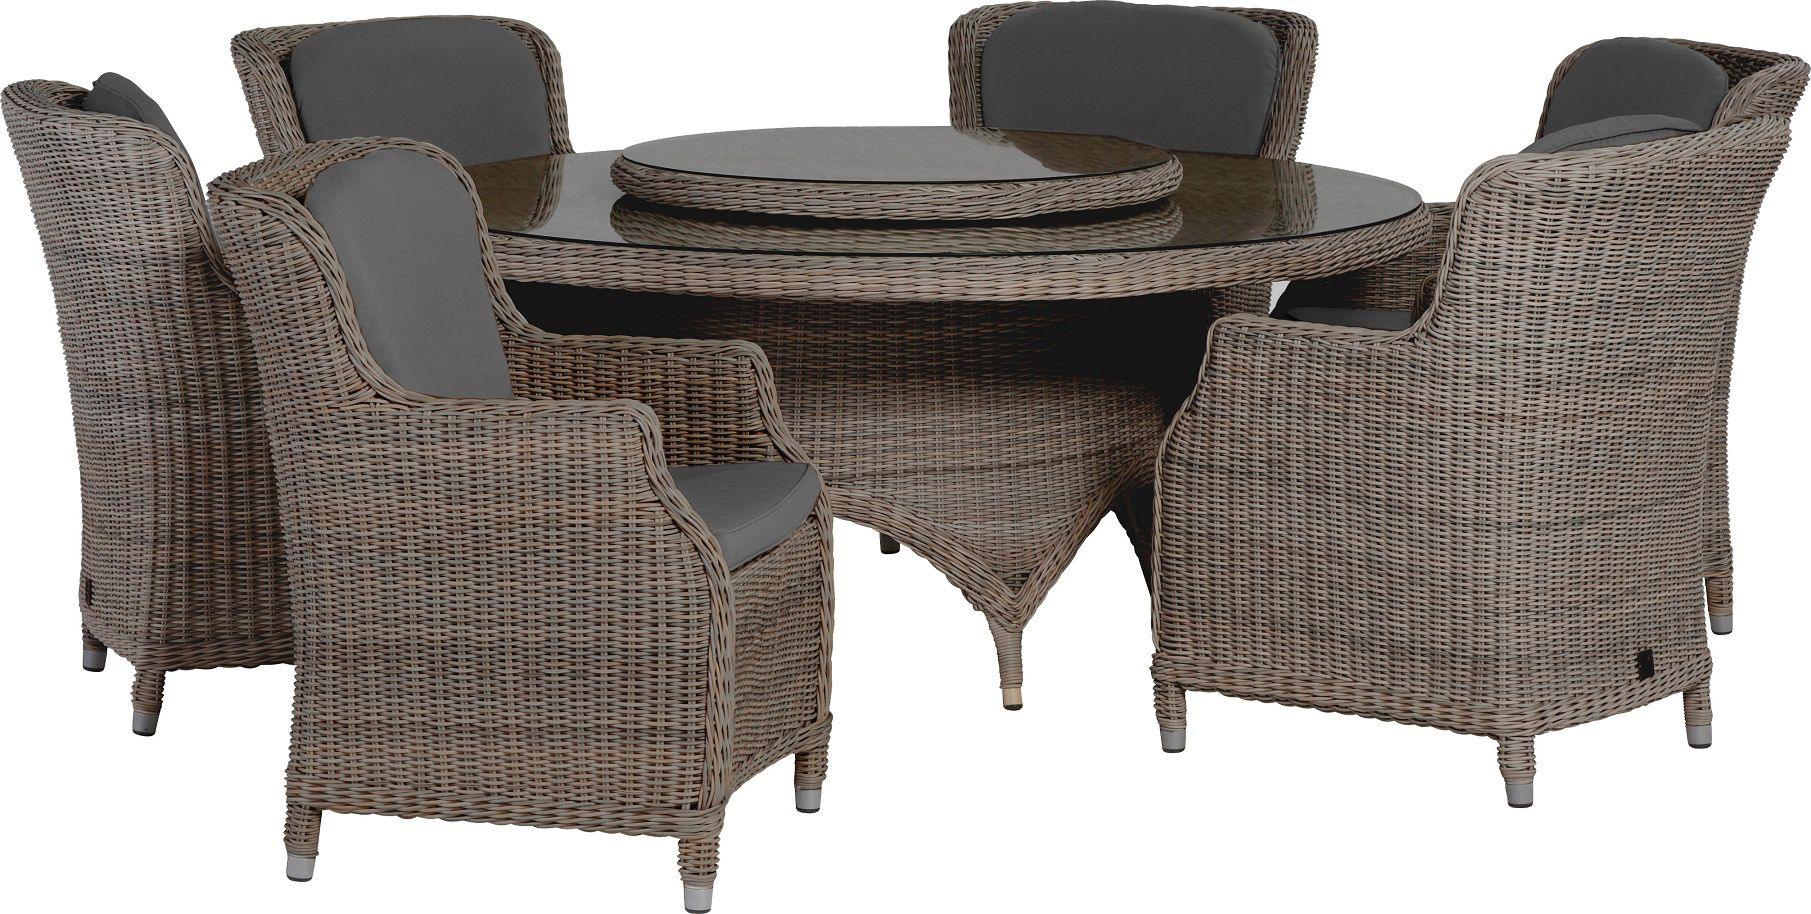 Image of 4 Seasons Outdoor Brighton 6 Seater Dining Set